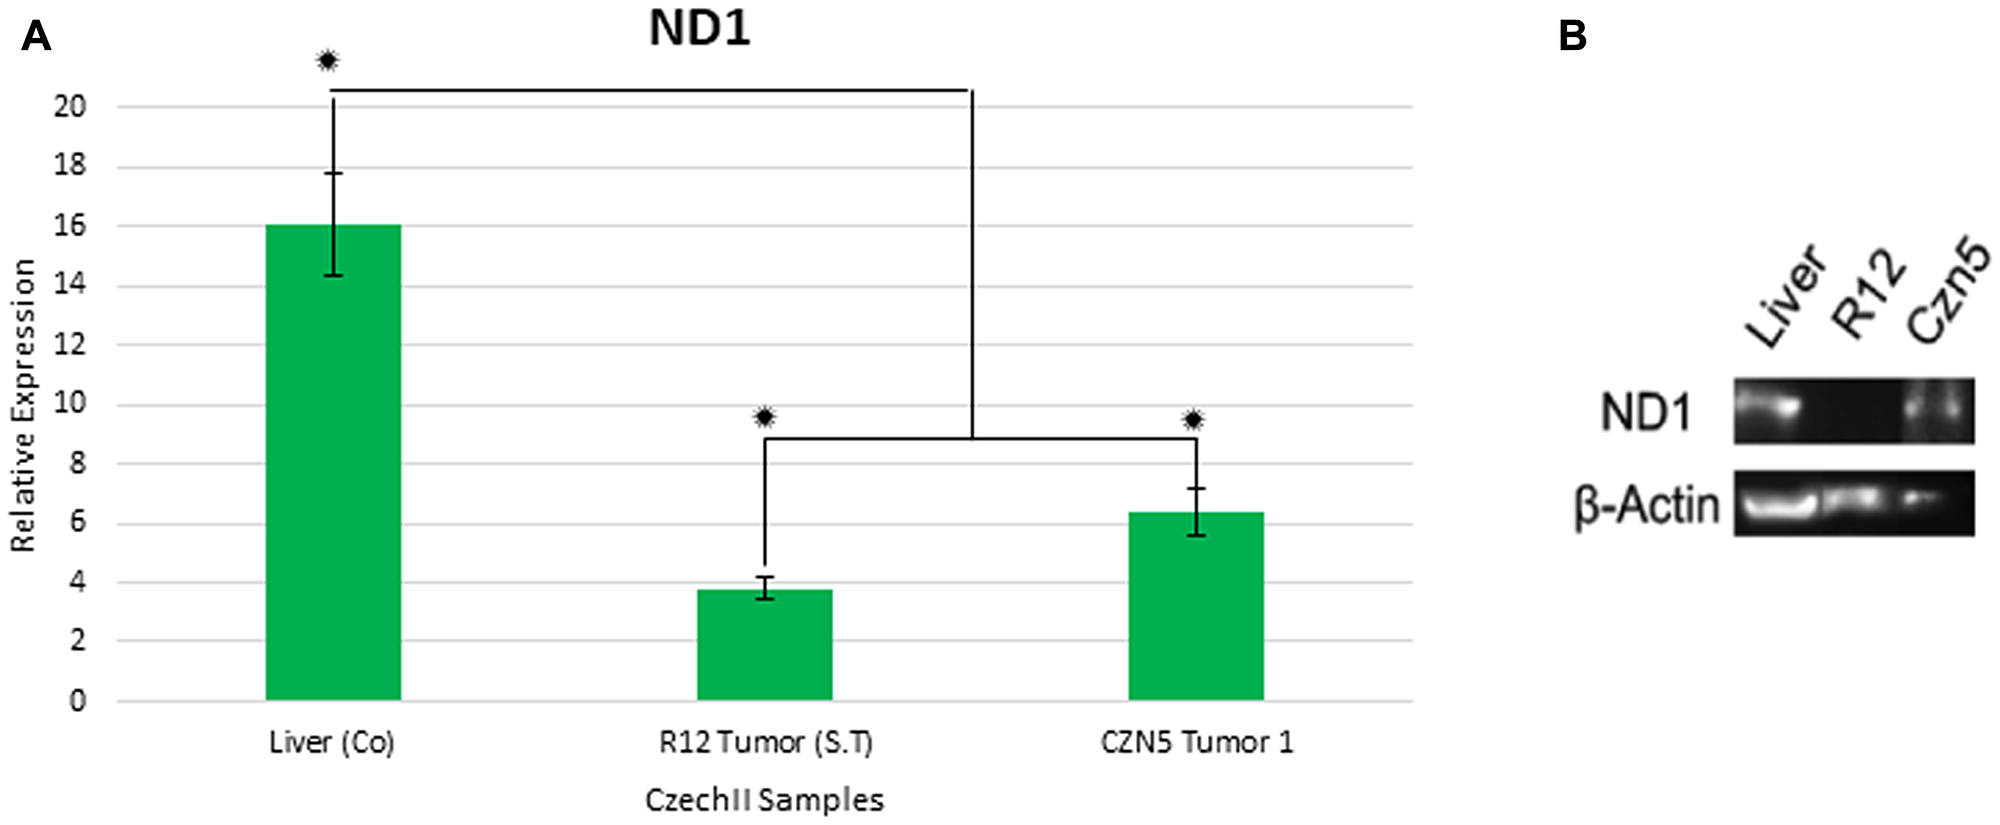 Gene expression of mt-Nd1 in CzechII tumor samples.